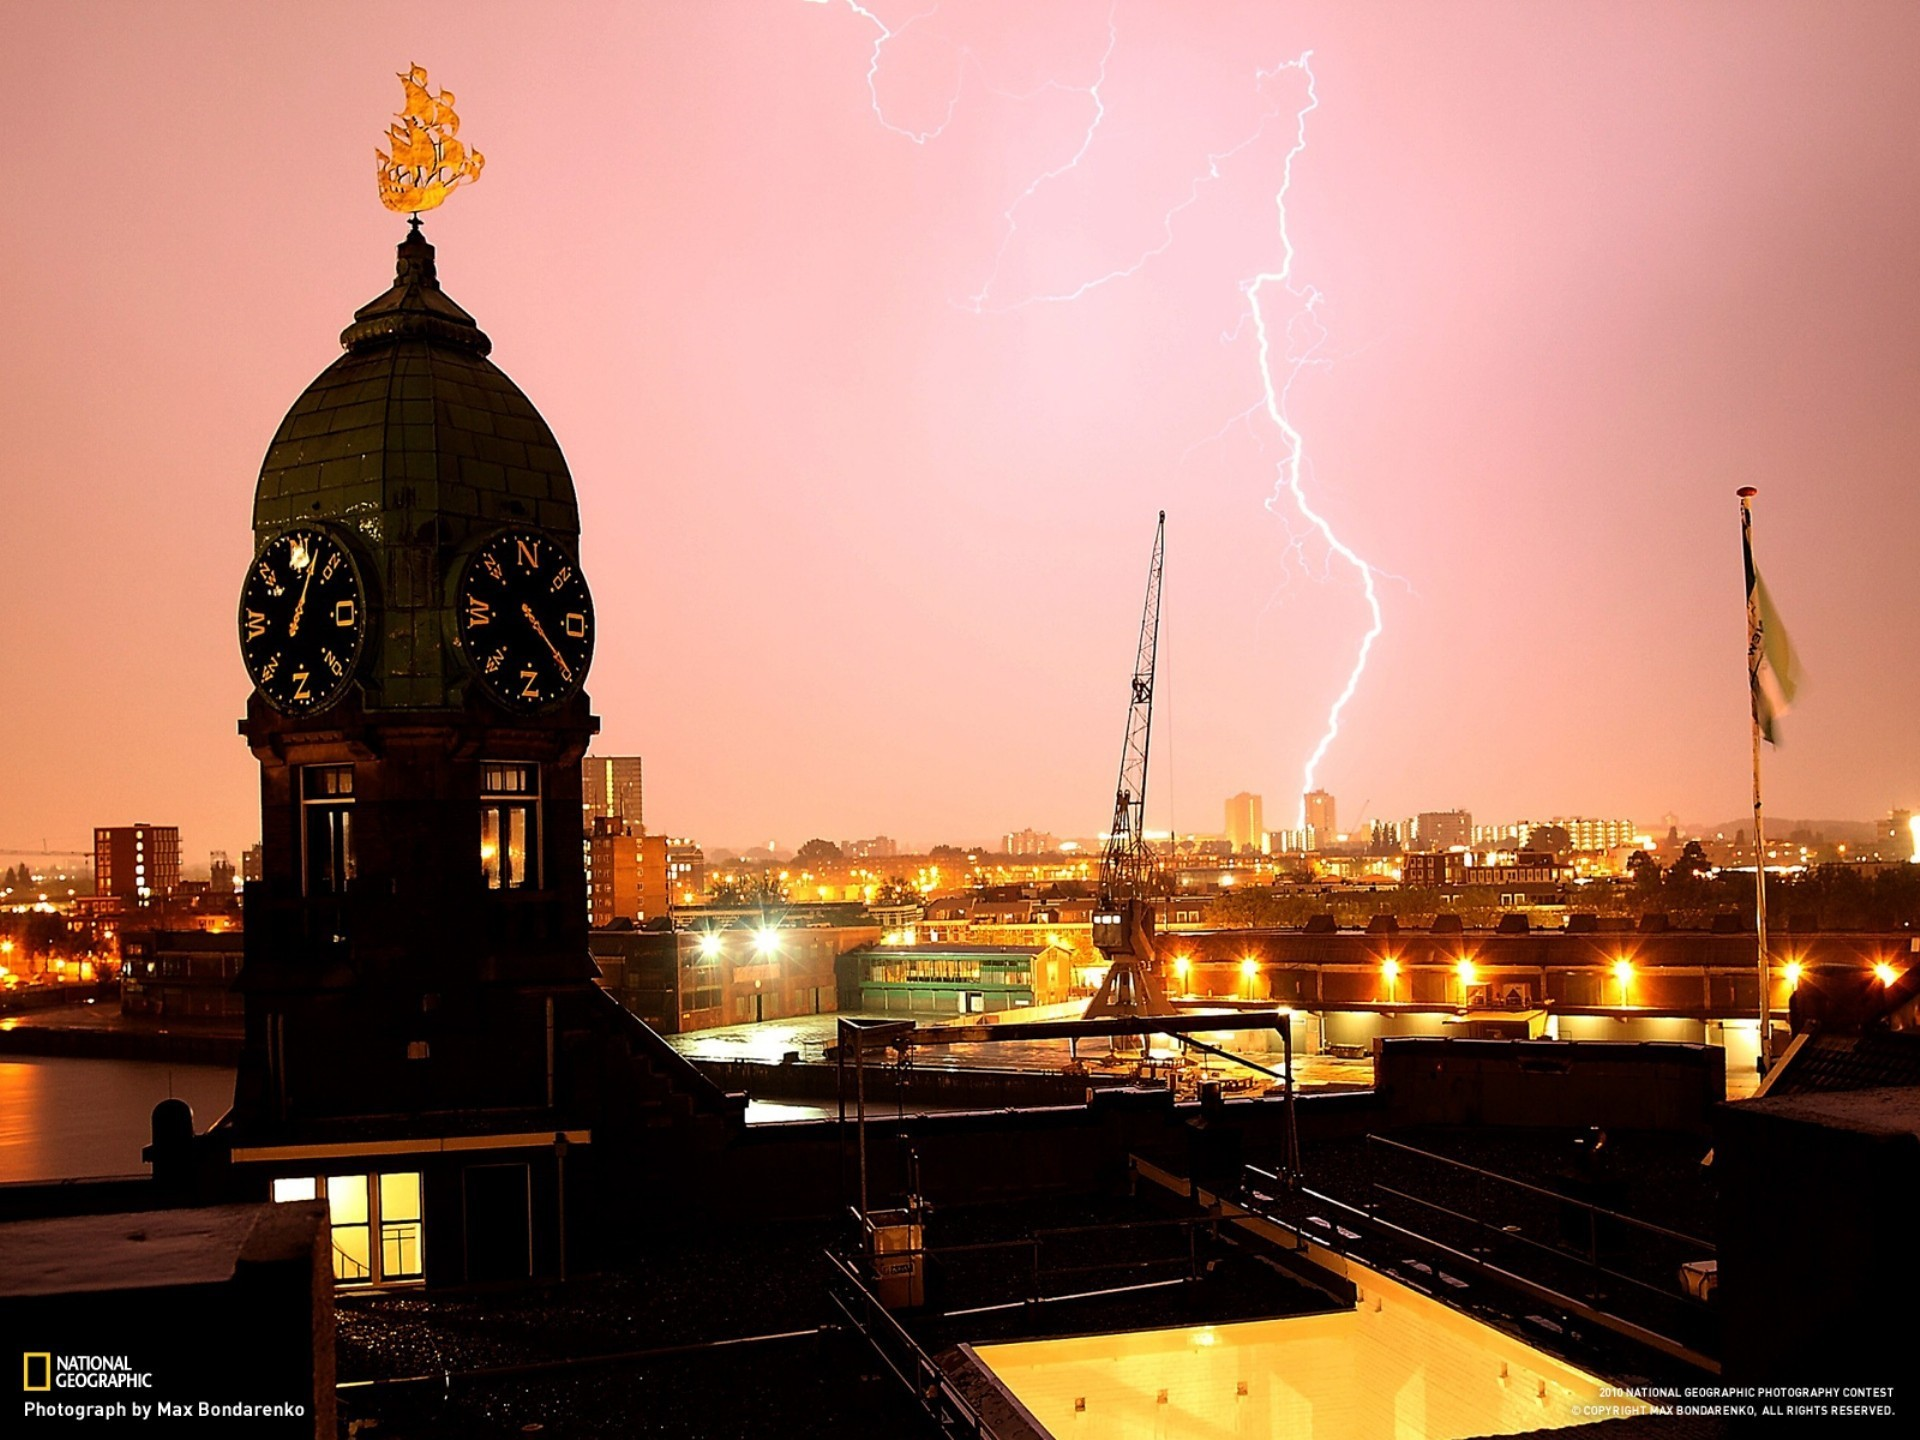 Res: 1920x1440, Cityscapes architecture clocks national geographic lightning morocco  wallpaper